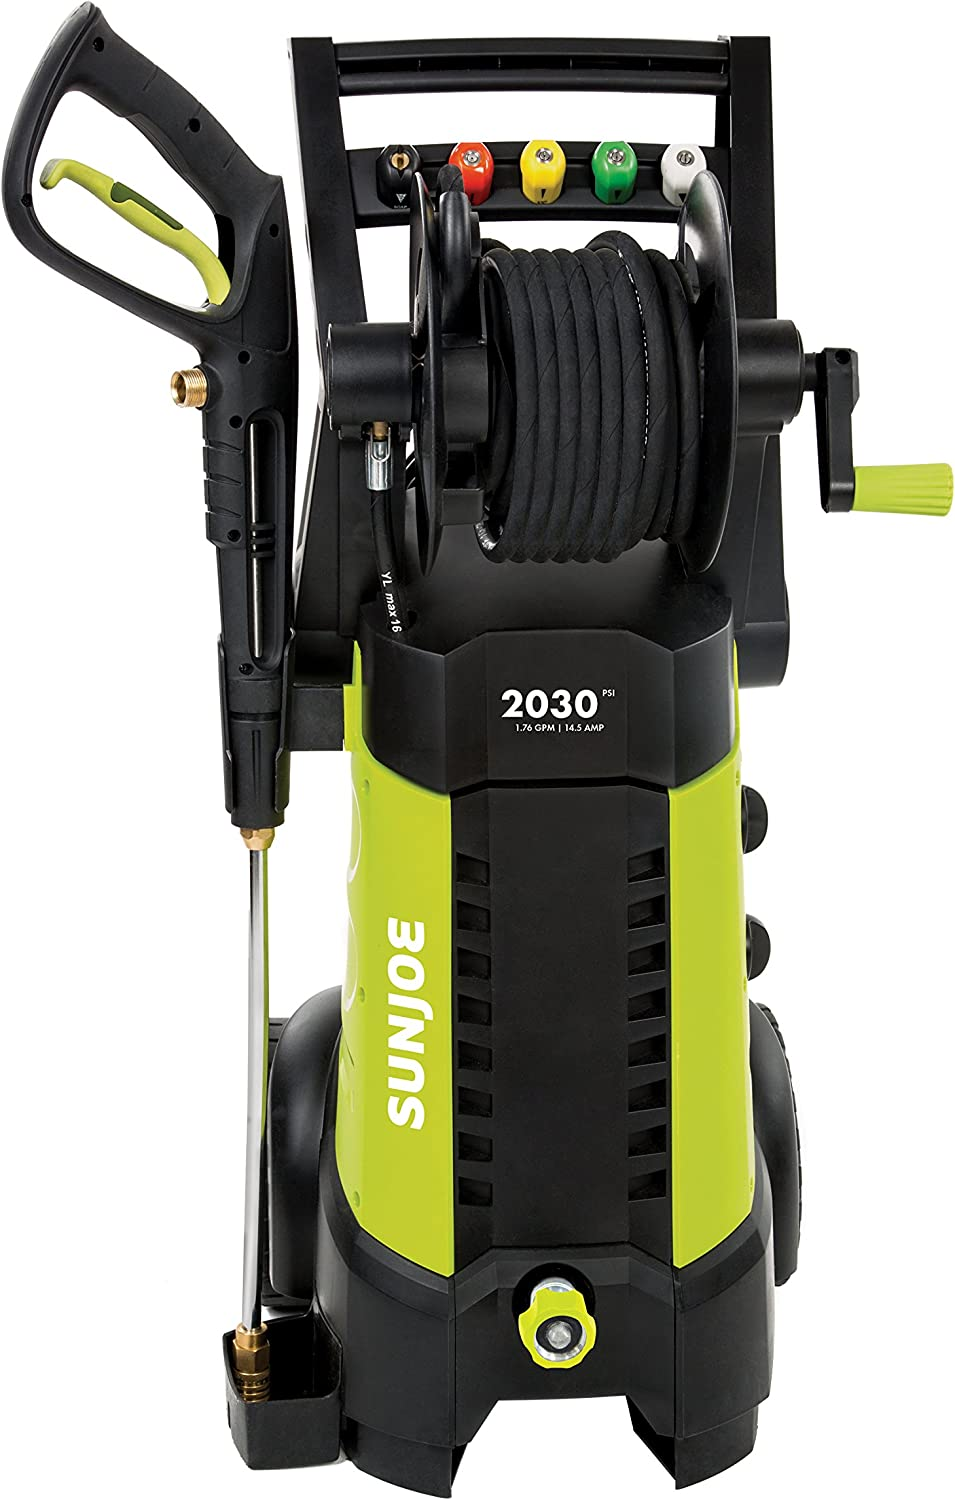 Sun Joe SPX3001 2030 PSI 1.76 GPM 14.5 AMP Electric Pressure Washer with Hose Ree